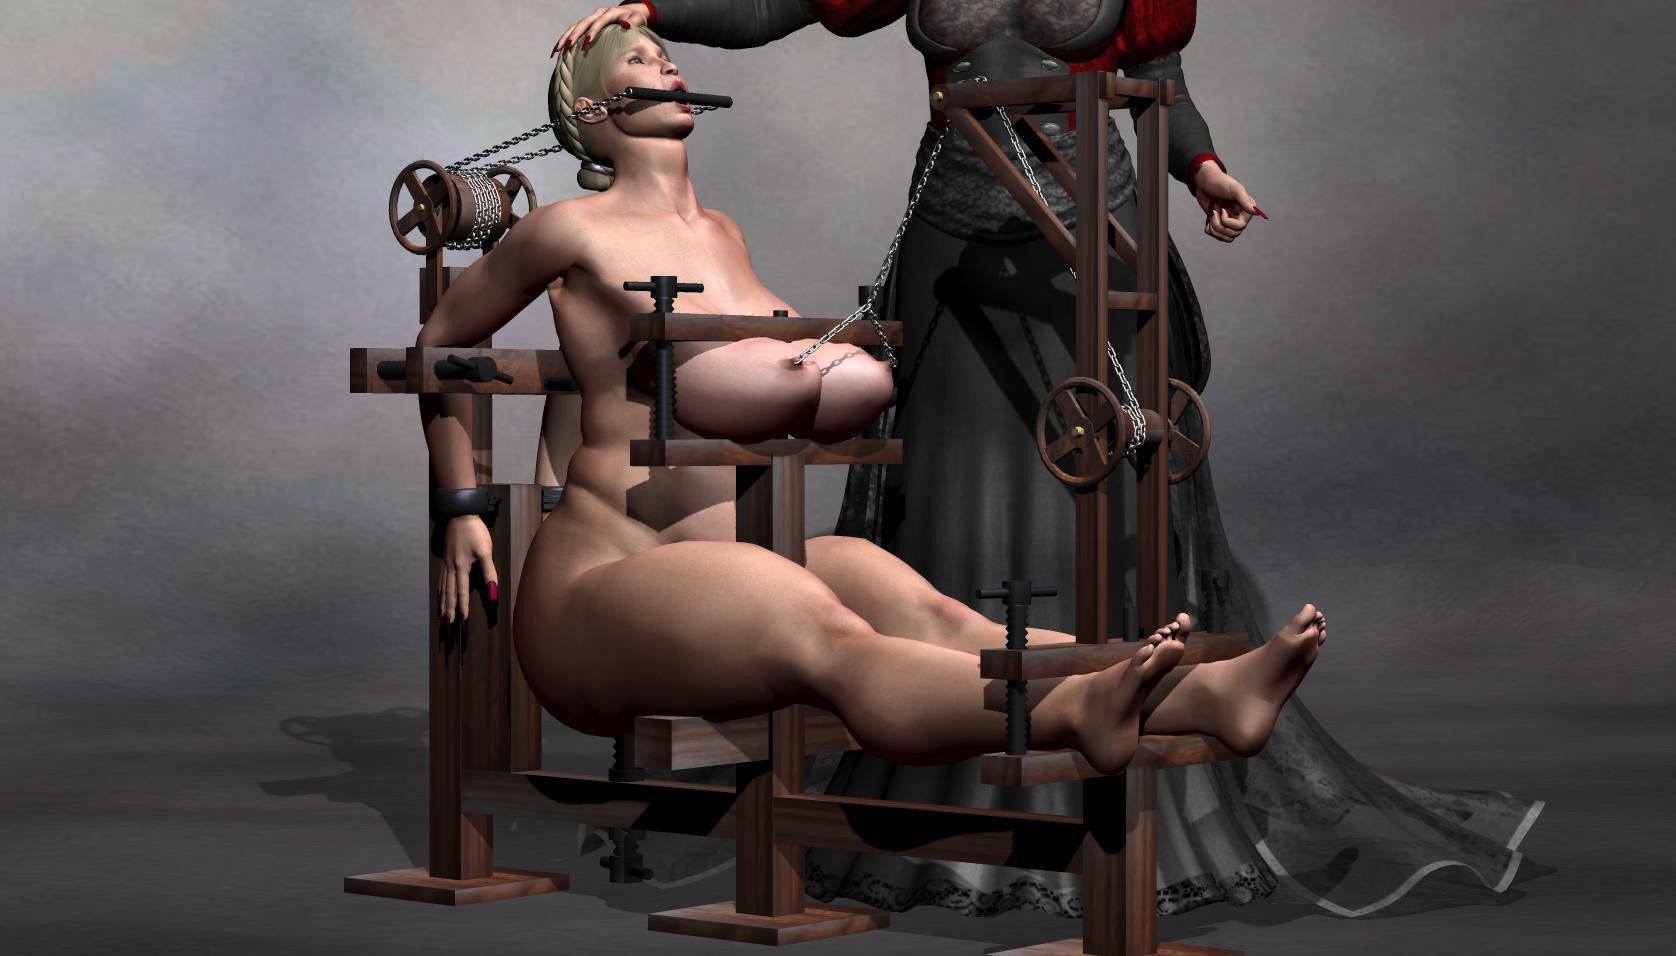 3d torture girl free video sex picture